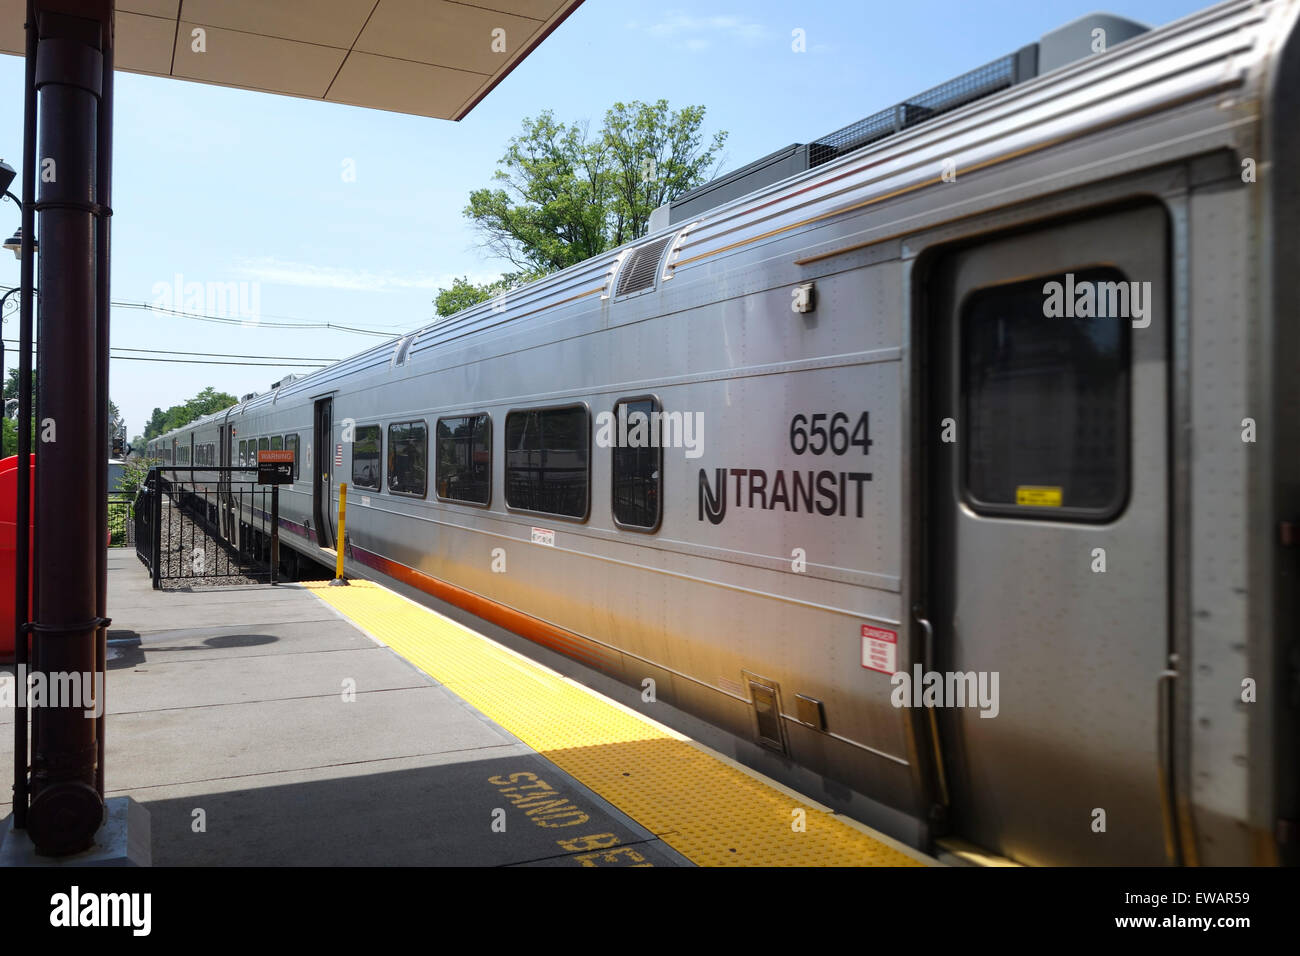 Transit Train Wagon Passing Plauderville Train Station In Garfield Stock Photo Alamy